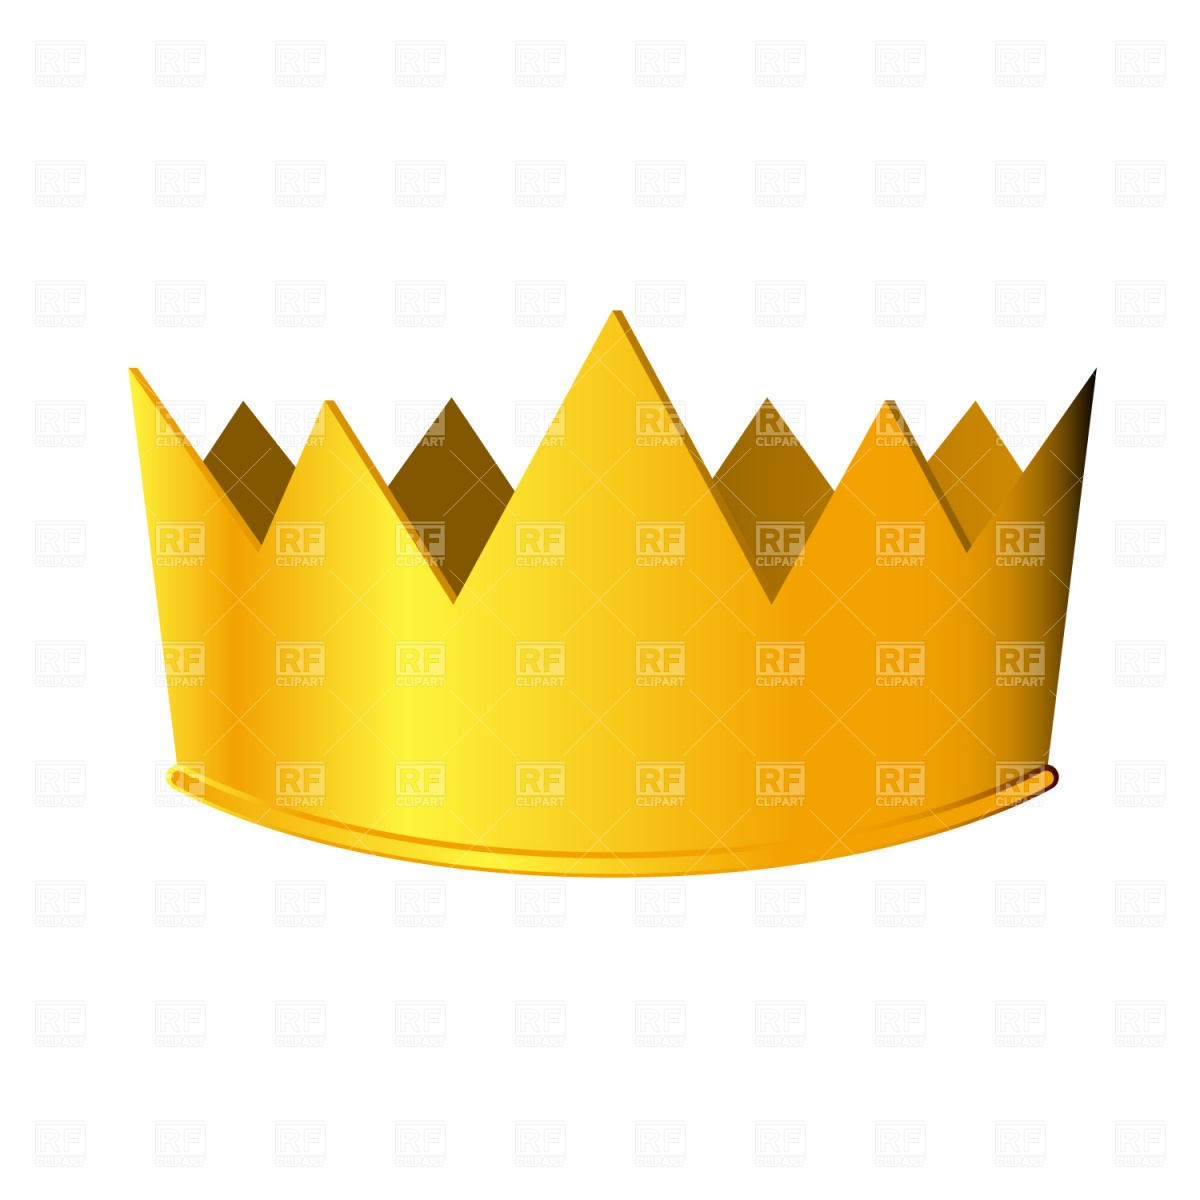 1200x1200 Royalty Free Simple Crown Clipart